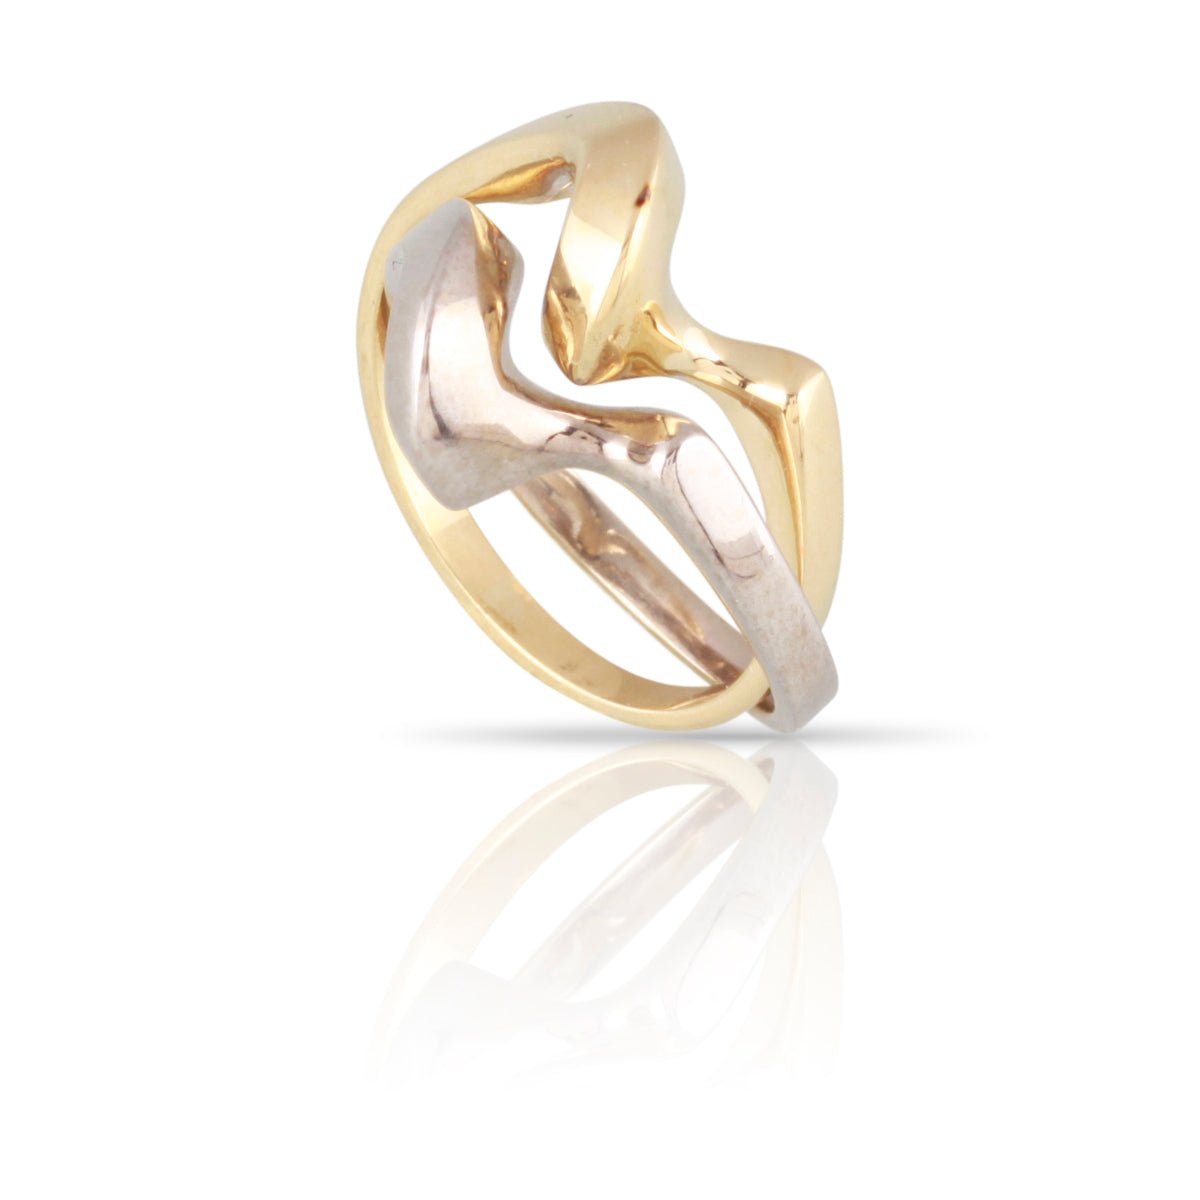 Two-Tone Gold Interlocking Ring | The Sophie